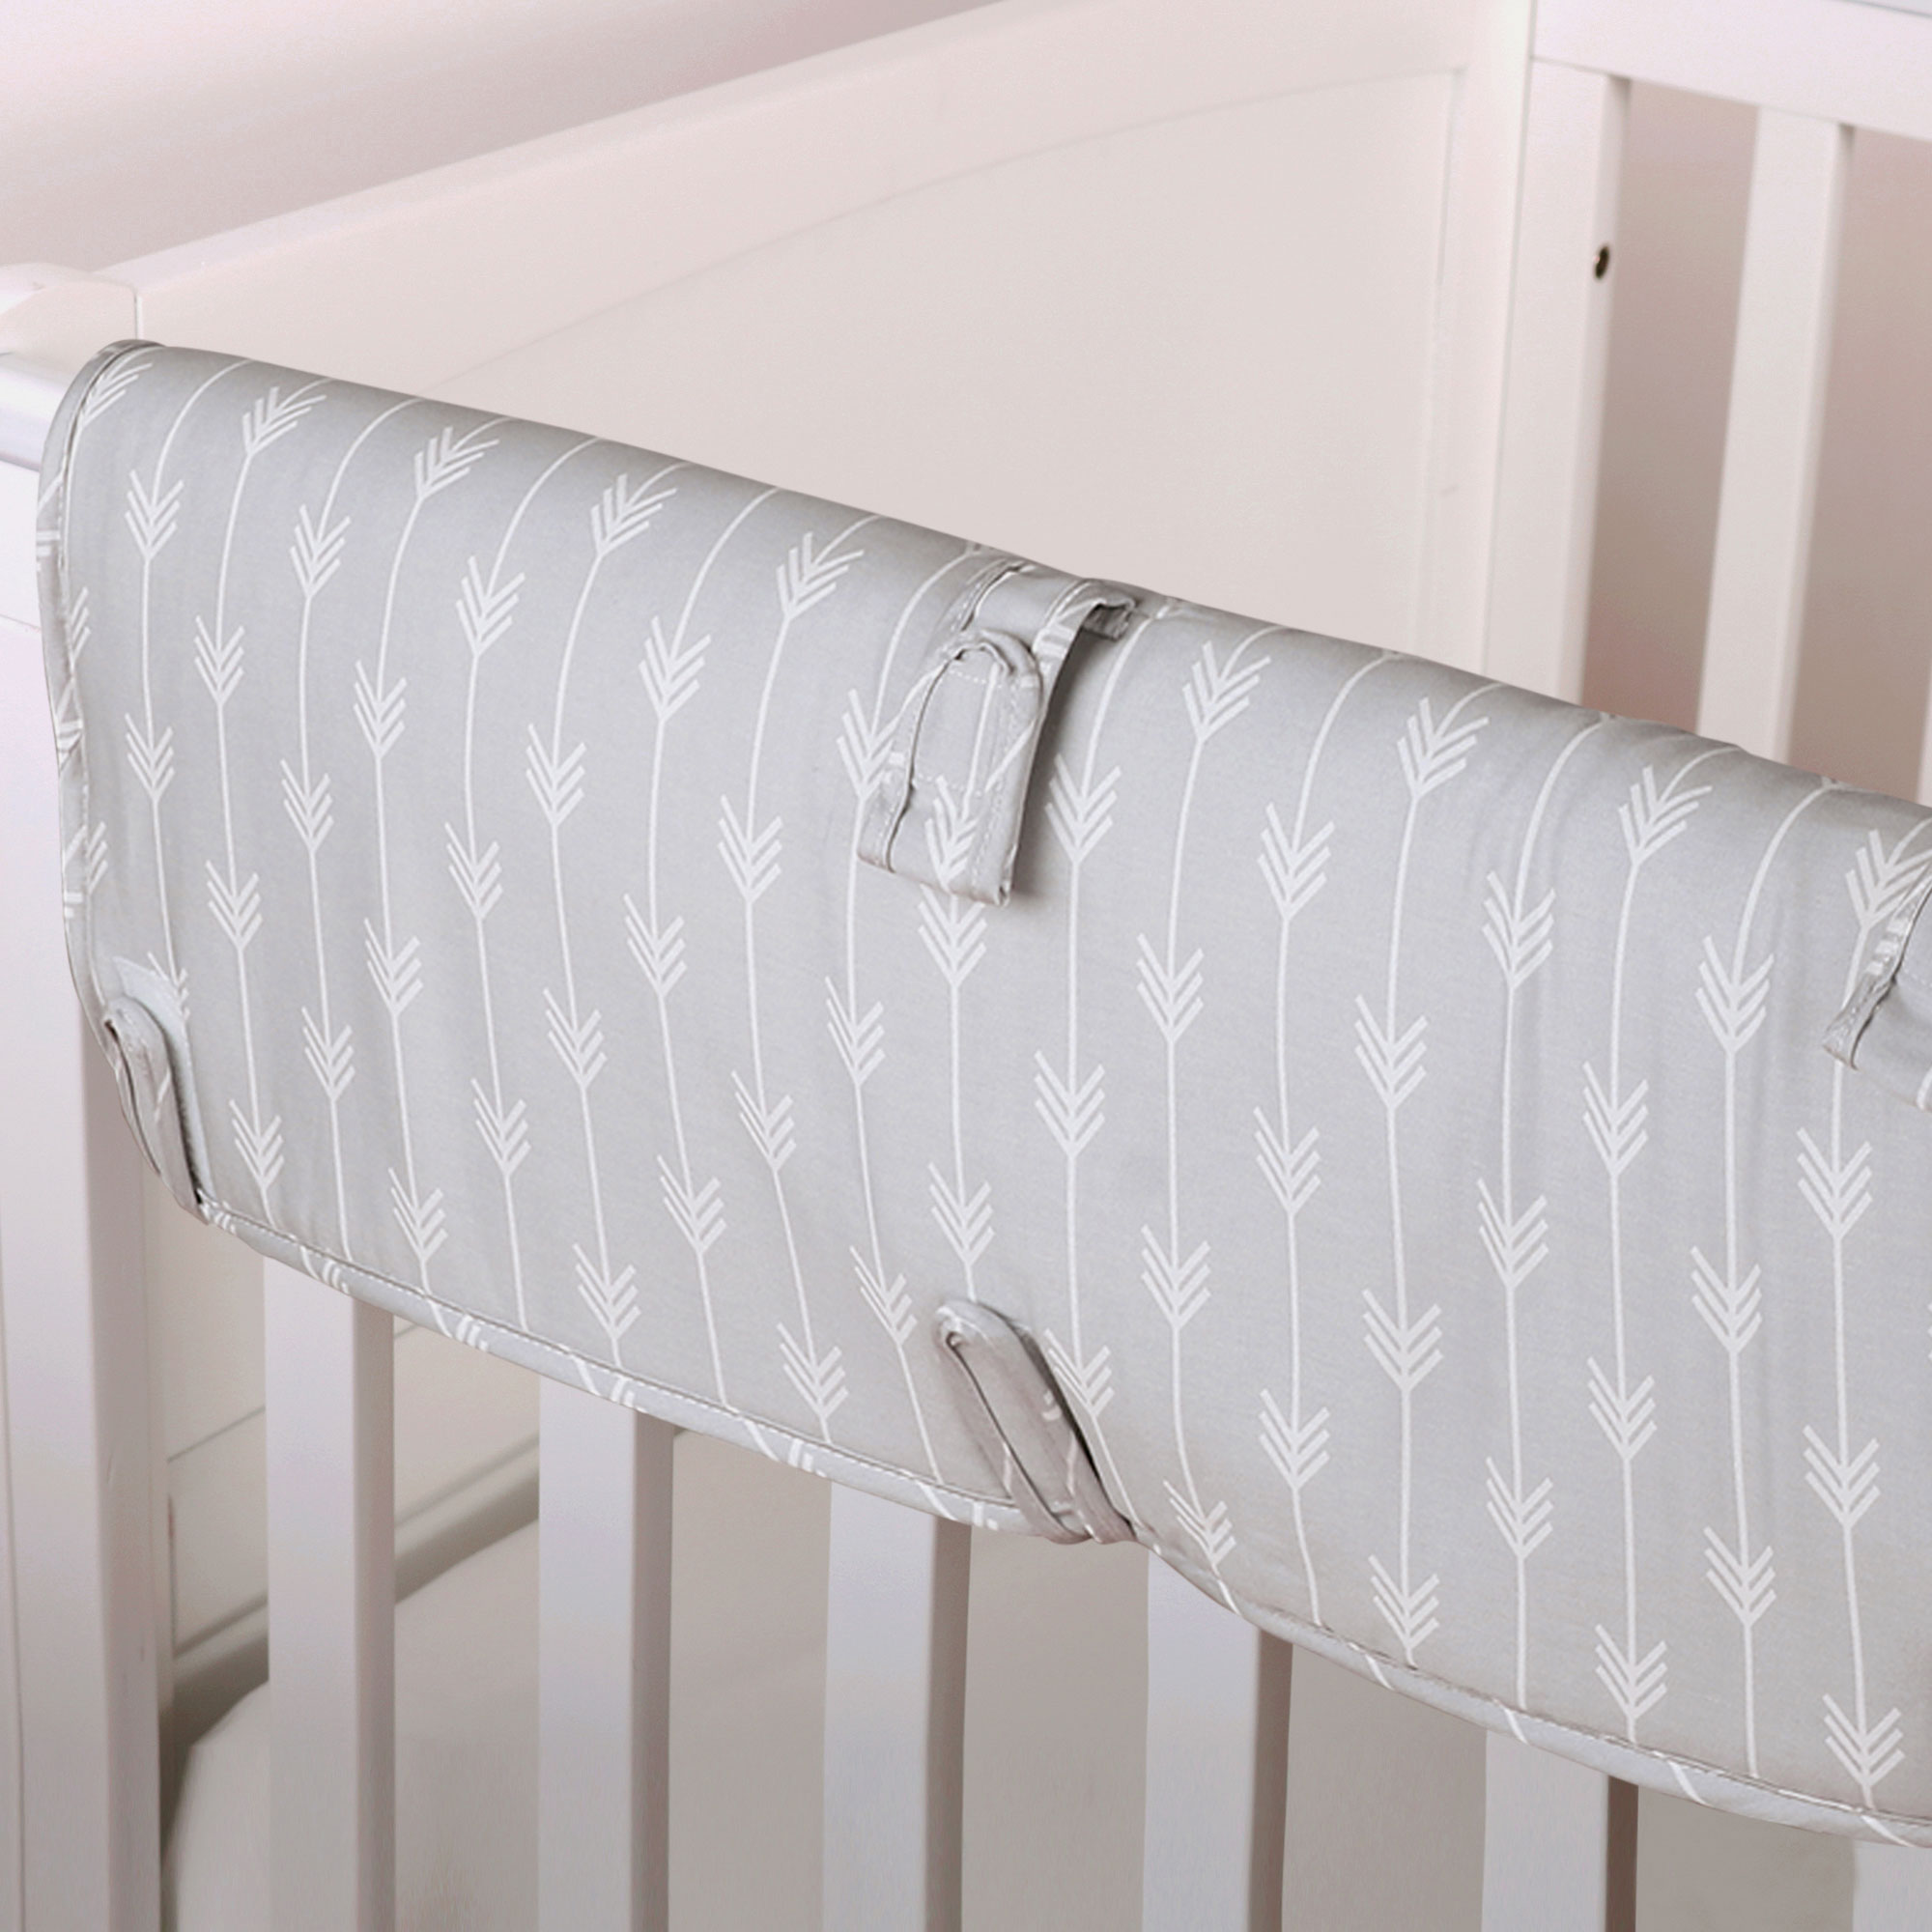 The Peanut Shell Baby Crib Rail Guard - Grey Arrow Geometric Print - 100% Cotton Sateen Cover, Polyester Fill